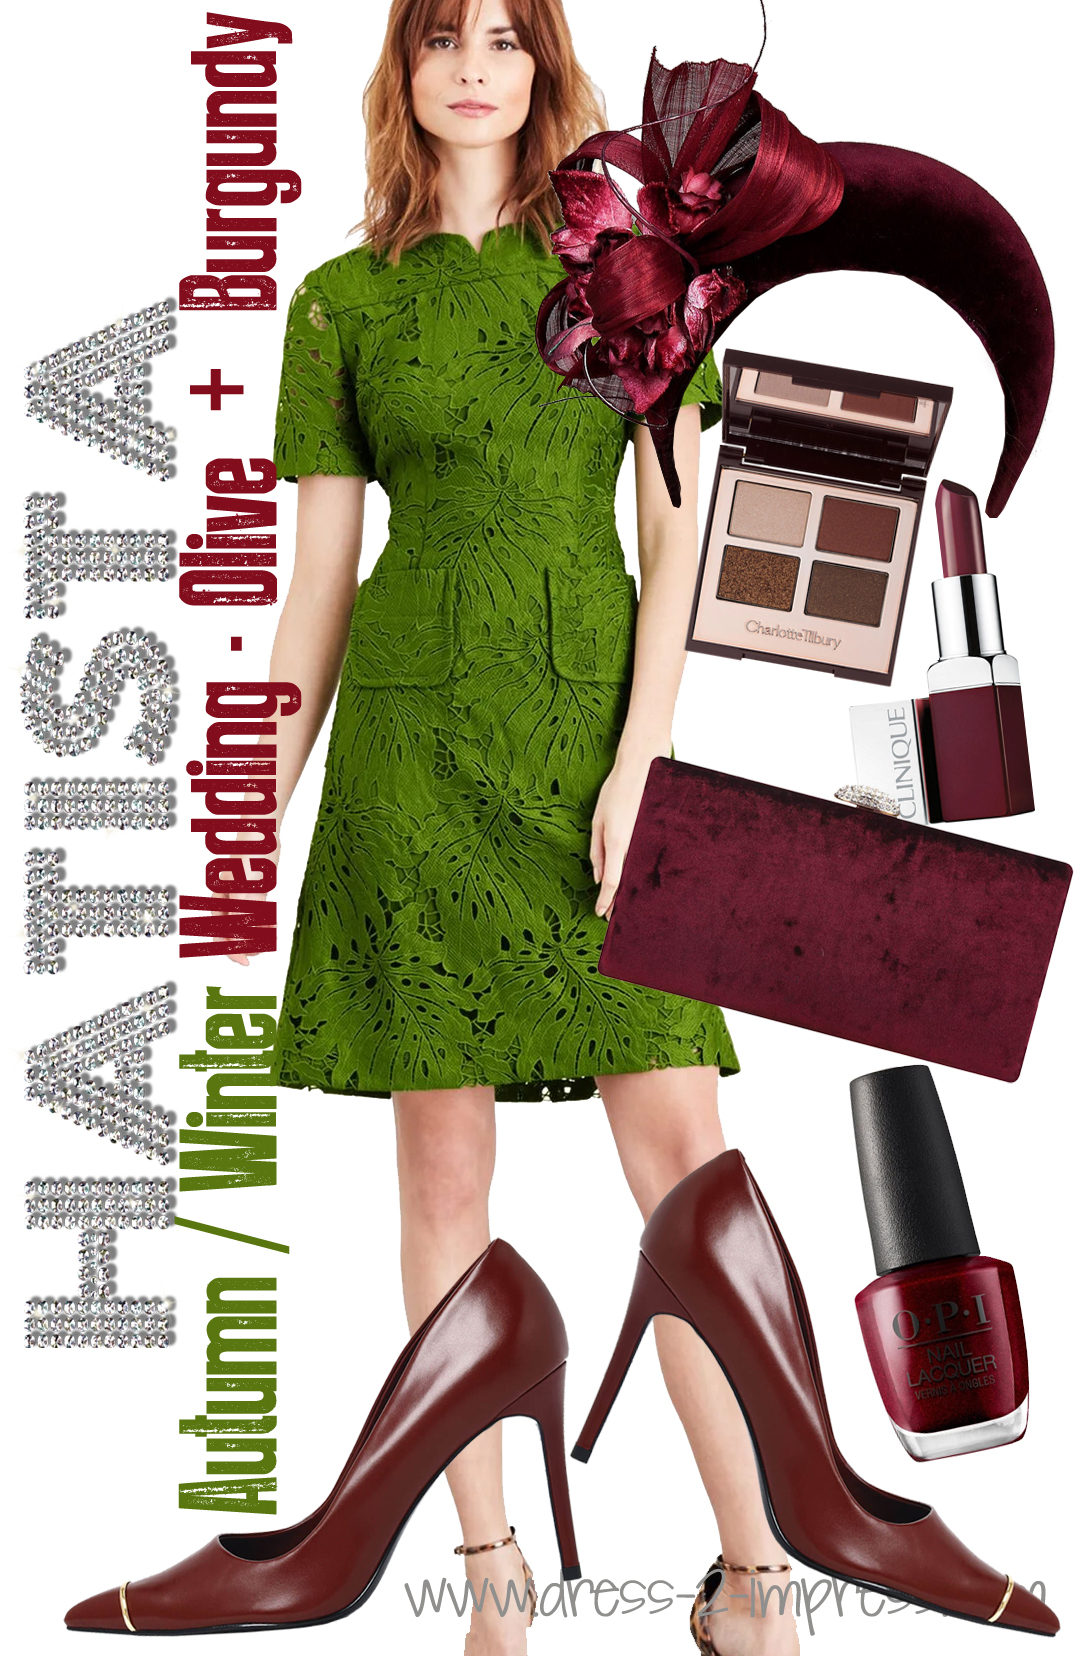 How to dress for an Autumn Wedding 2020. Burgundy and Olive Green Colour Combo 2020. Outfits with Burgundy 2020. Autumn Wedding Outfit inspiration 2020. What to wear to an Autumn Wedding UK. Autumn Wedding Guests outfits 2020. How to dress for a Fall wedding 2020. How to wear Olive Green 2020. What to wear to a September wedding 2020.